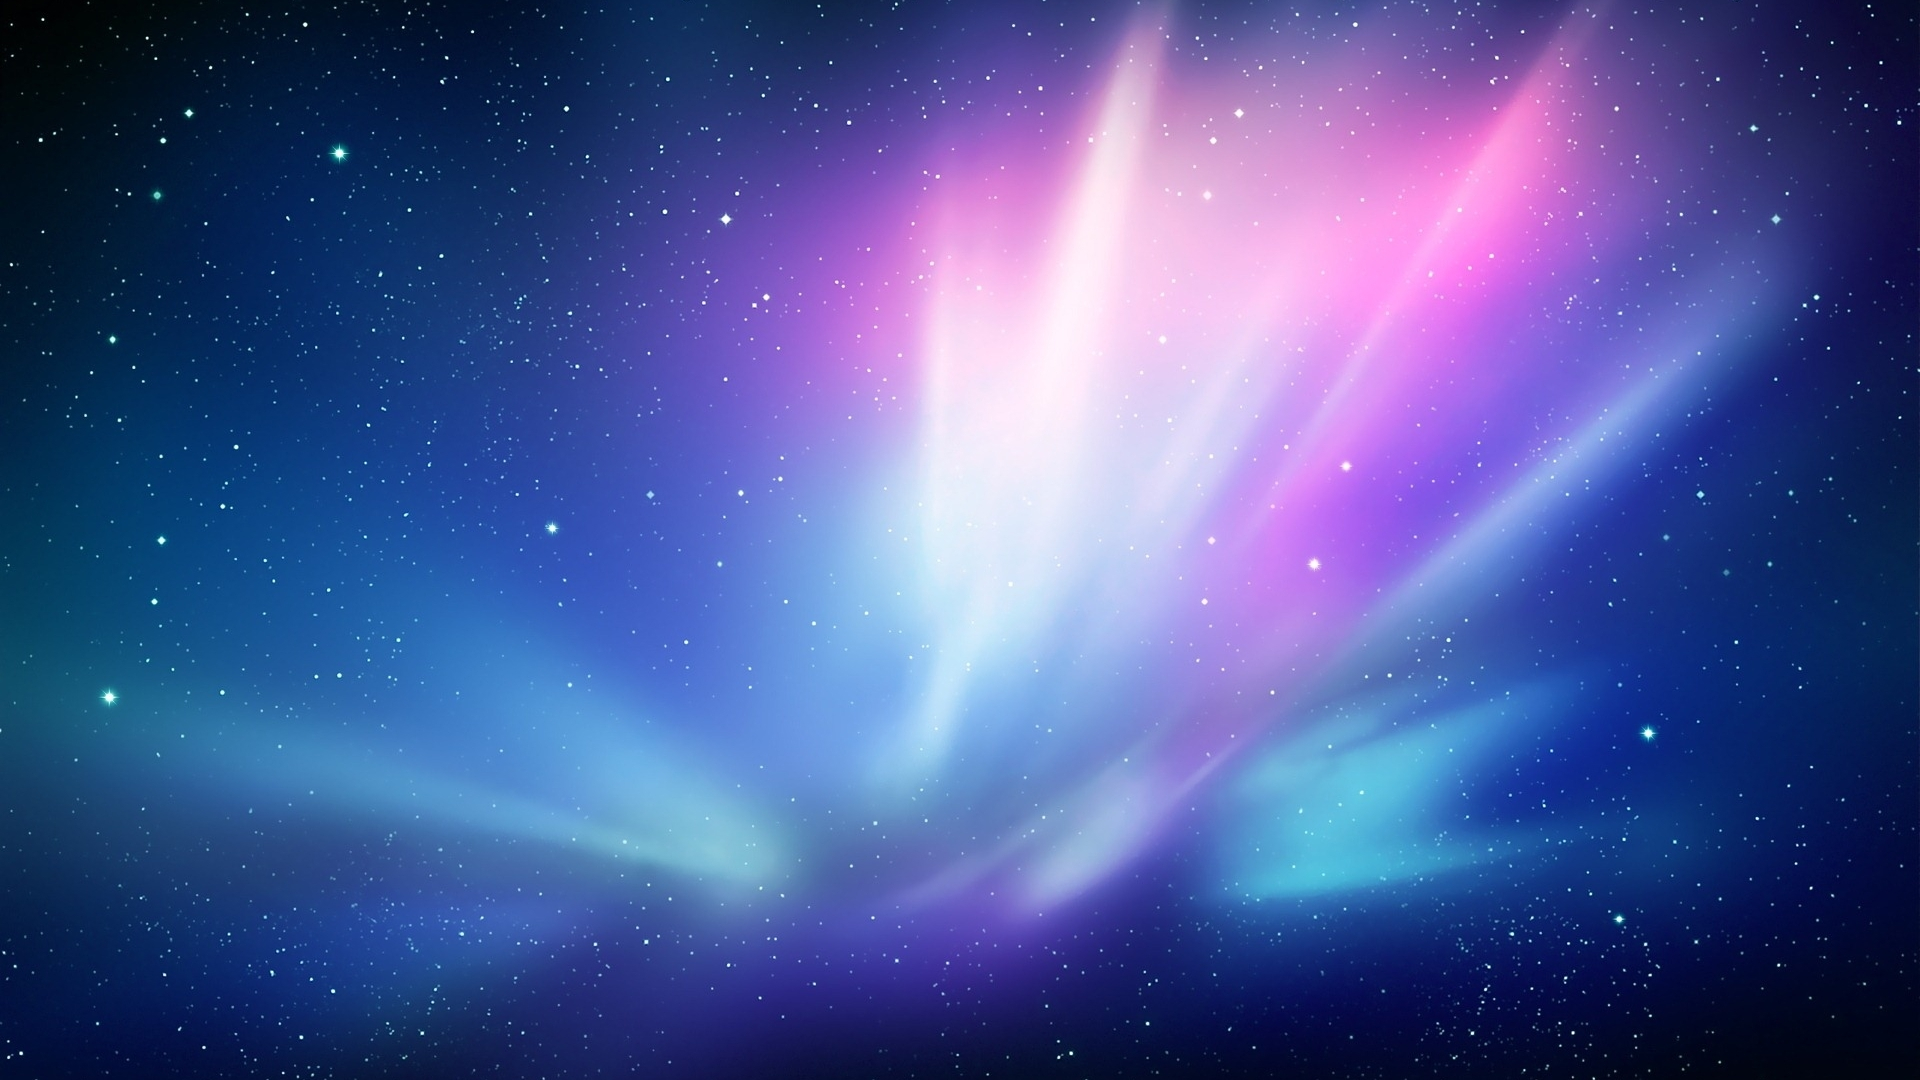 Download Wonderful purple blue galaxy wallpaper in Space wallpapers 1920x1080